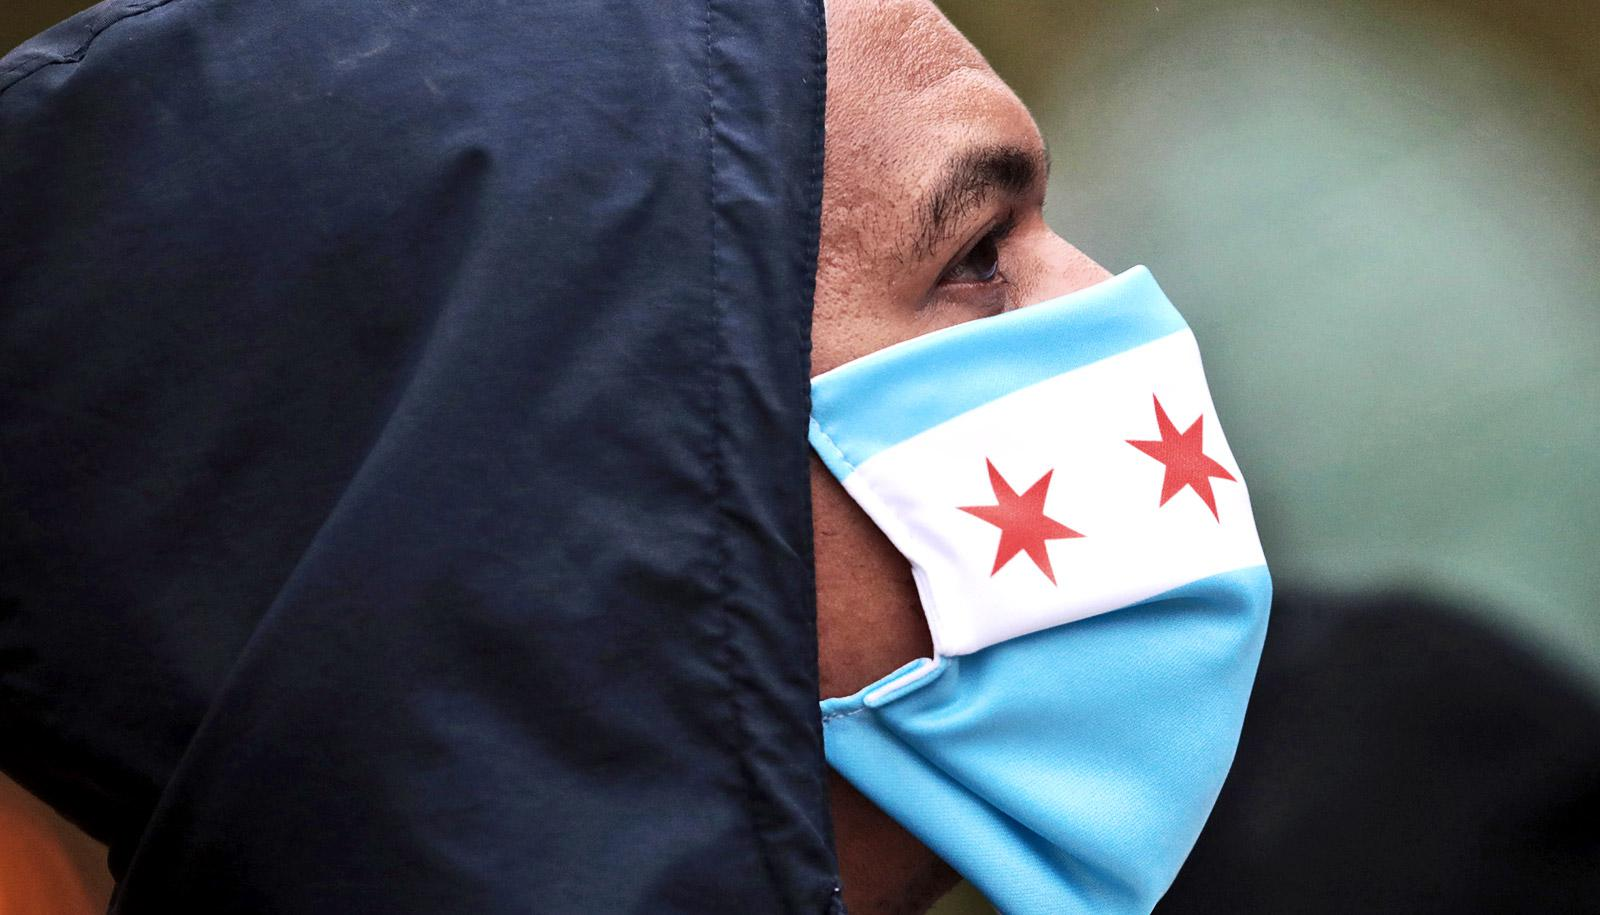 A man wears a mask with blue stripes and red stars in a white bar to prevent coronavirus transmission